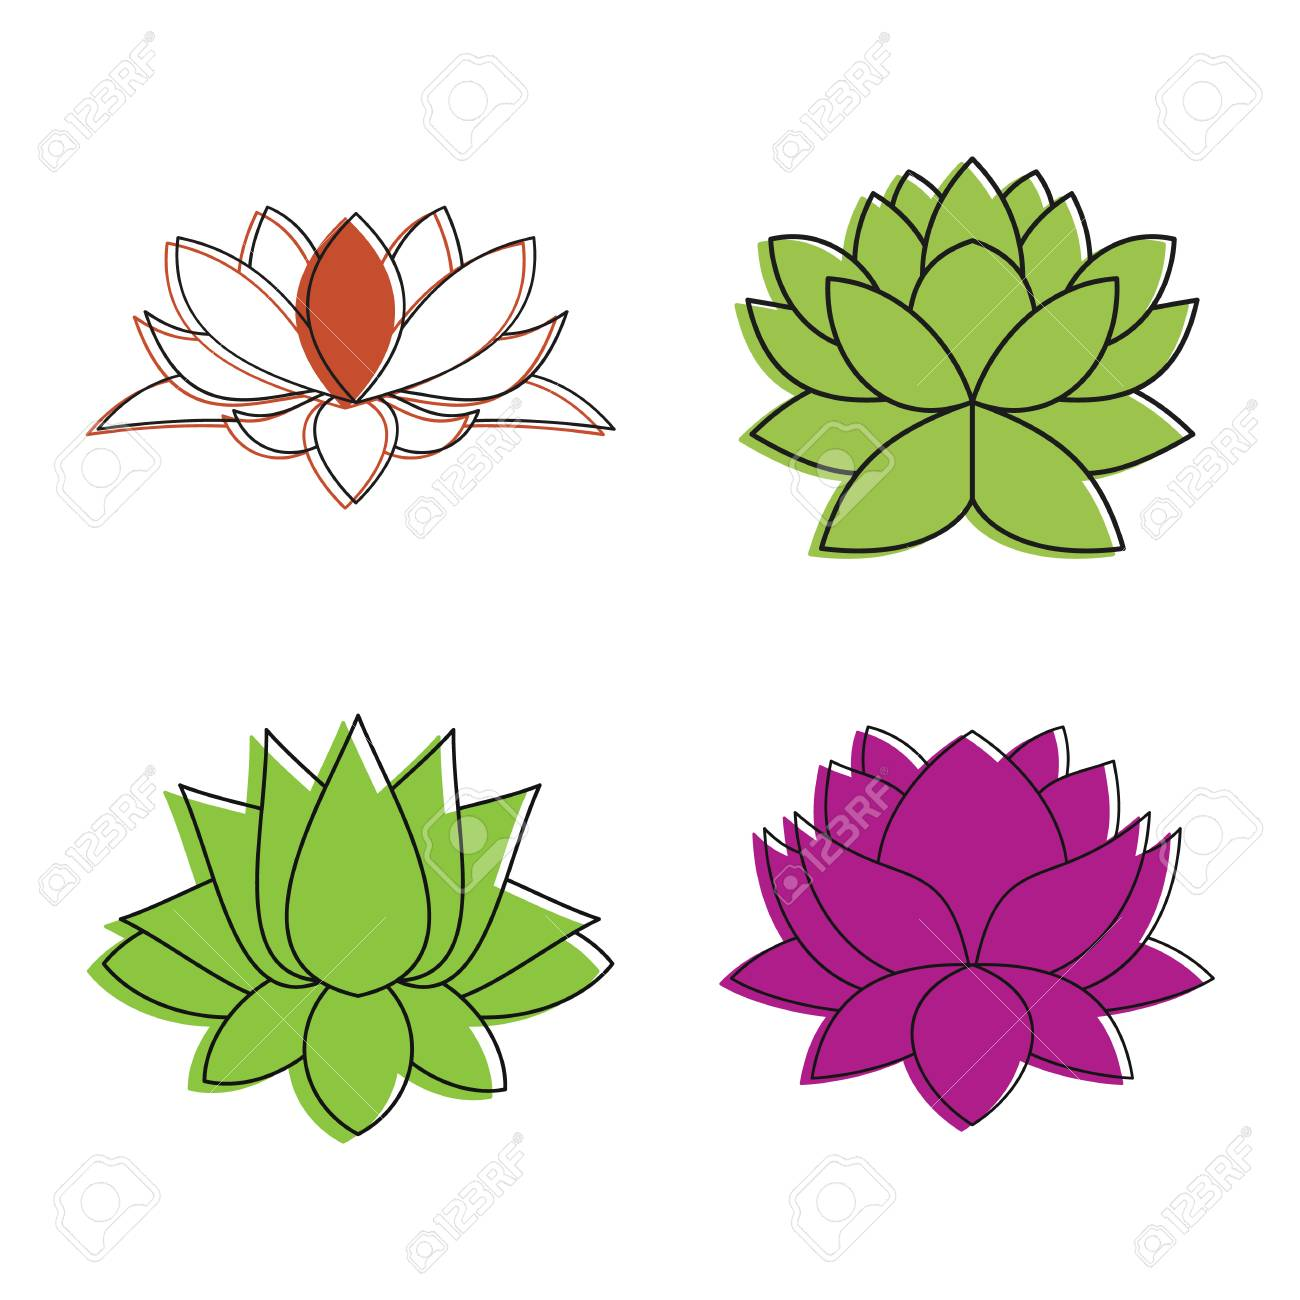 Lotus flower icon set color outline style royalty free cliparts lotus flower icon set color outline style stock vector 98986041 izmirmasajfo